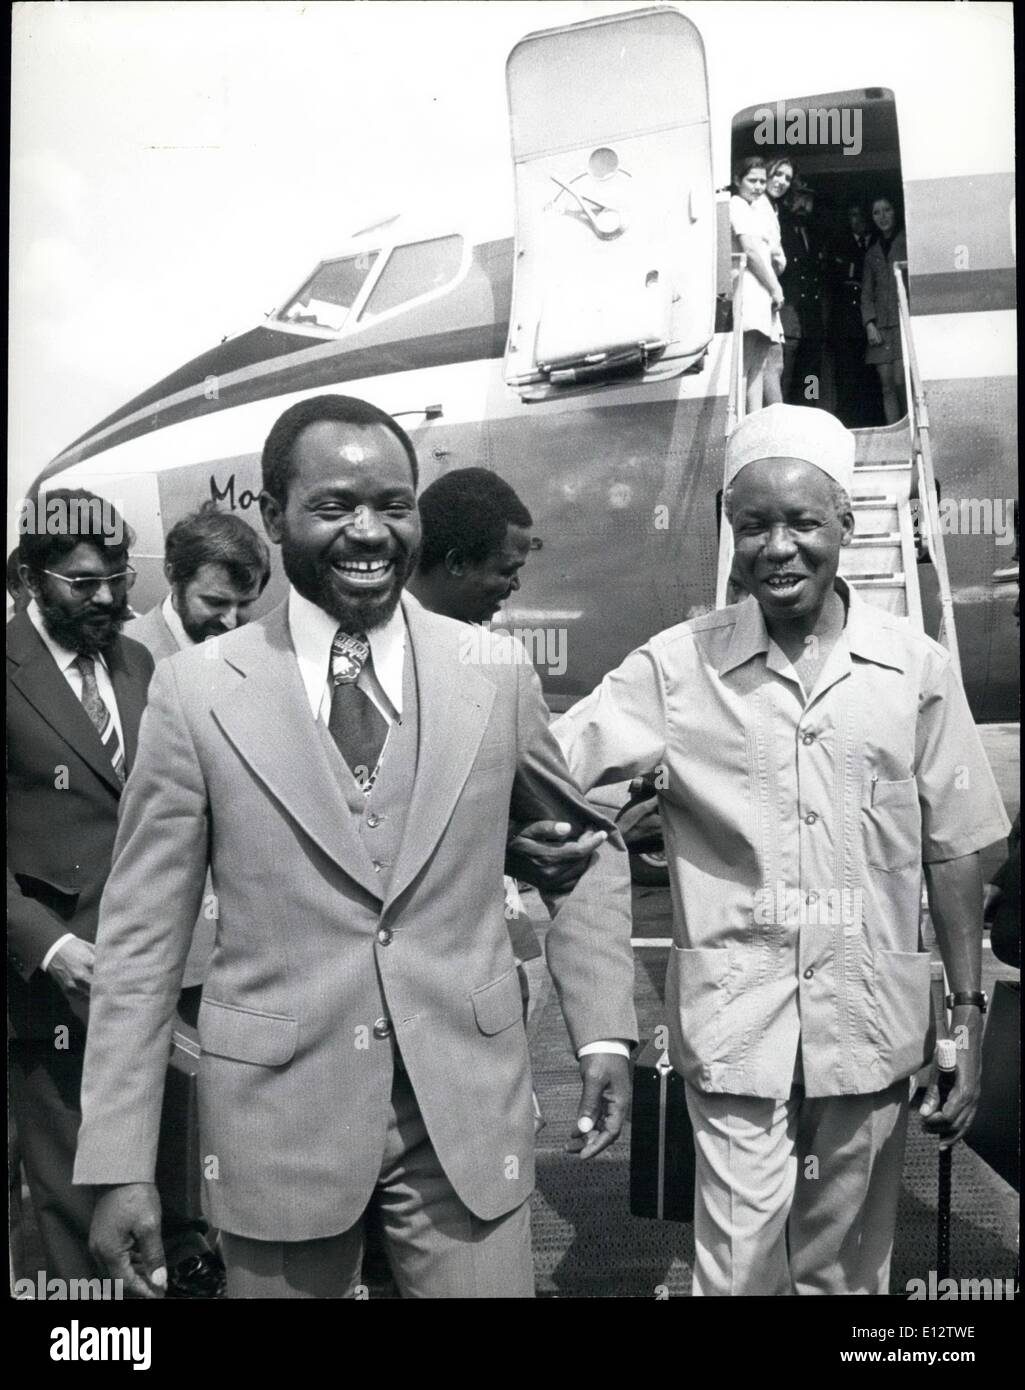 Feb. 24, 2012 - President Samora Machel (left) of neighboring Mozambique and President Julius Nyerere of Tanzania meet in the Tanzanian capital of Dar es Salaam recently to discuss Angola and other matters ''of mutual interest.'' Credits: Camerapixq - Stock Image